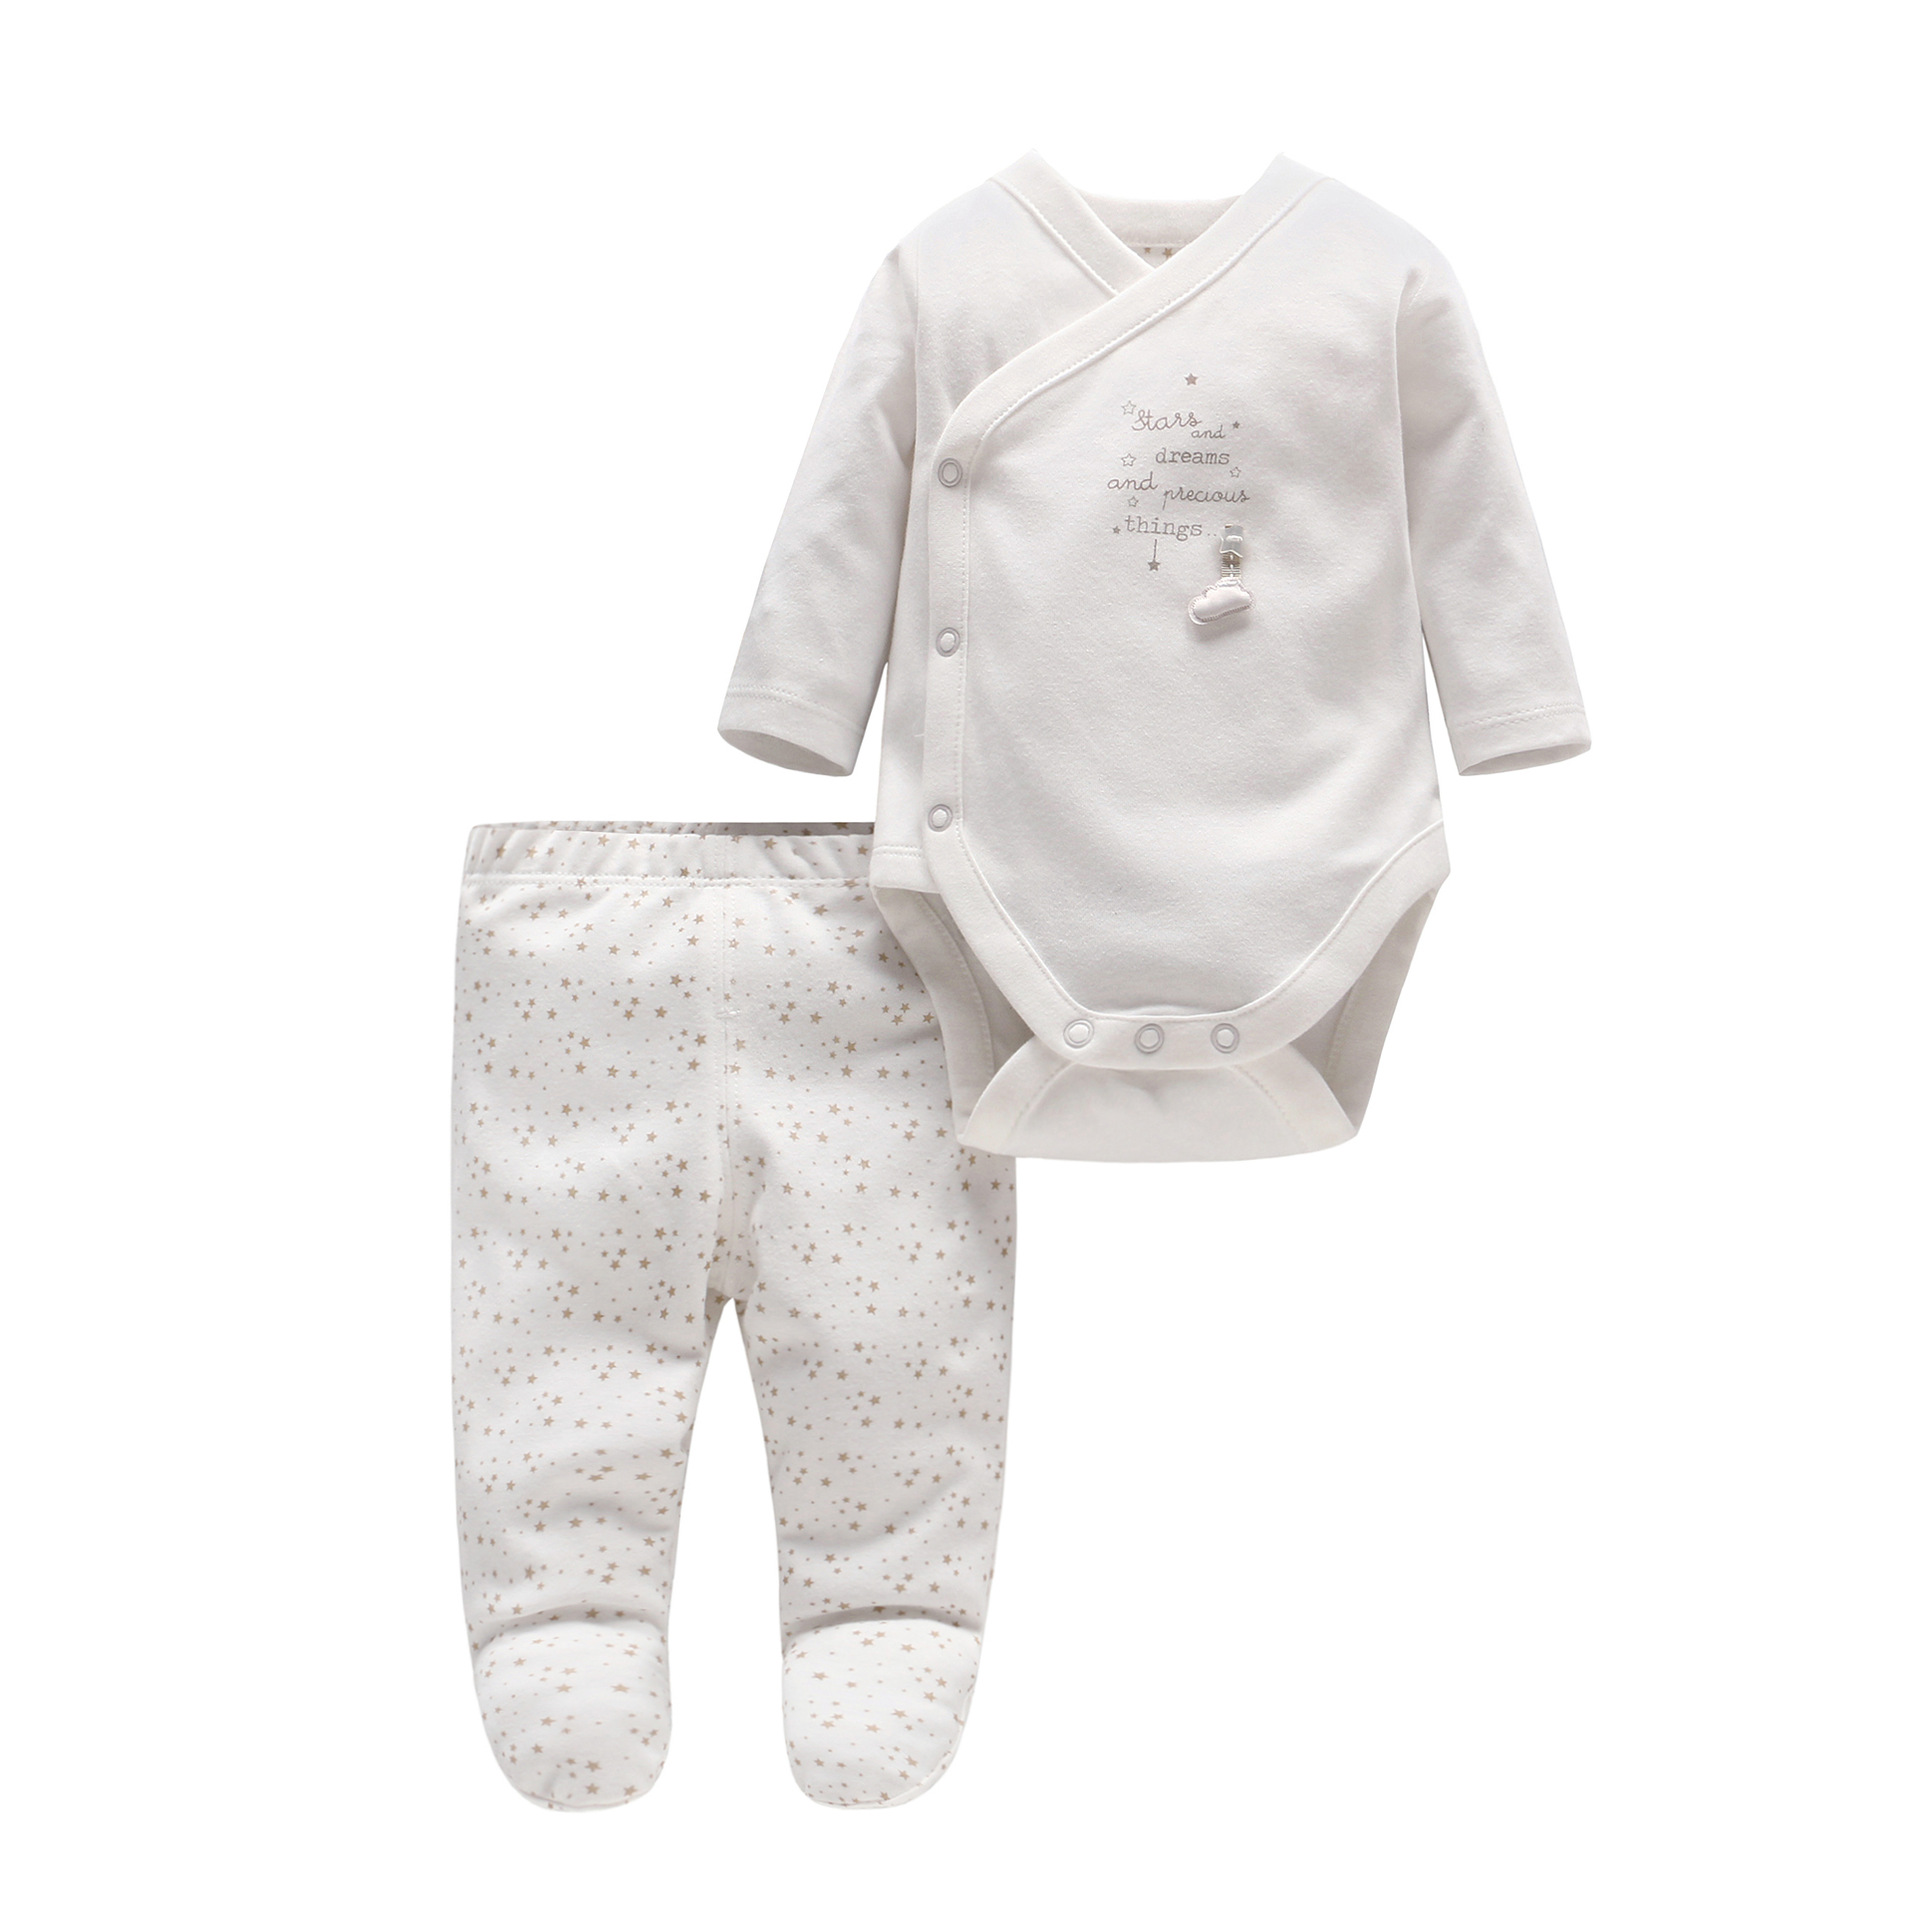 2pcs/set Baby Boy Clothes Set Newborn Baby Cotton Long Sleeve Star And Letter Rompers Set Infant Girl One-piece And Pants Set 2pcs set baby clothes set boy